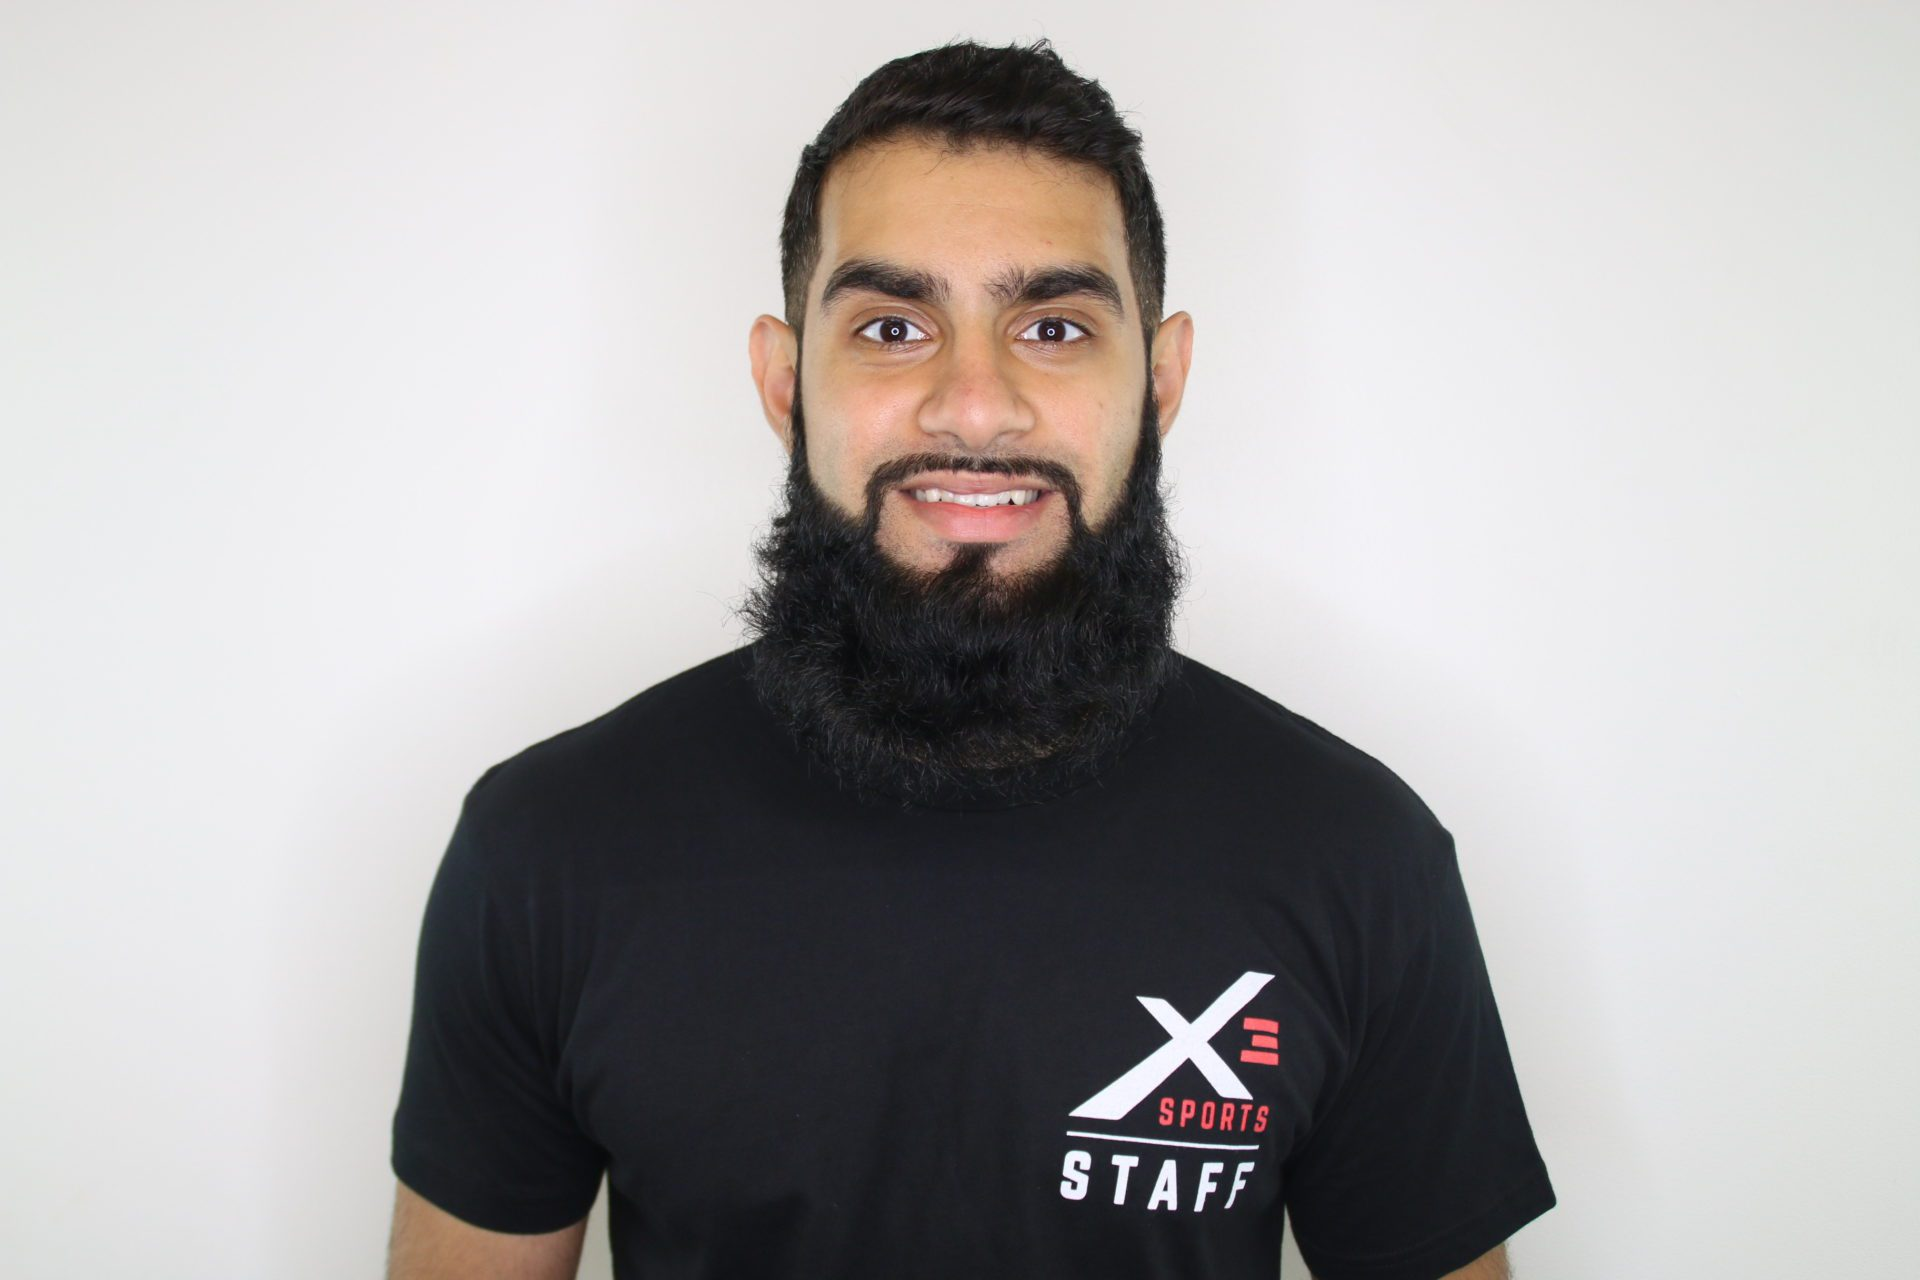 Jasdeep Singh | X3 Sports Employee | X3 Sports